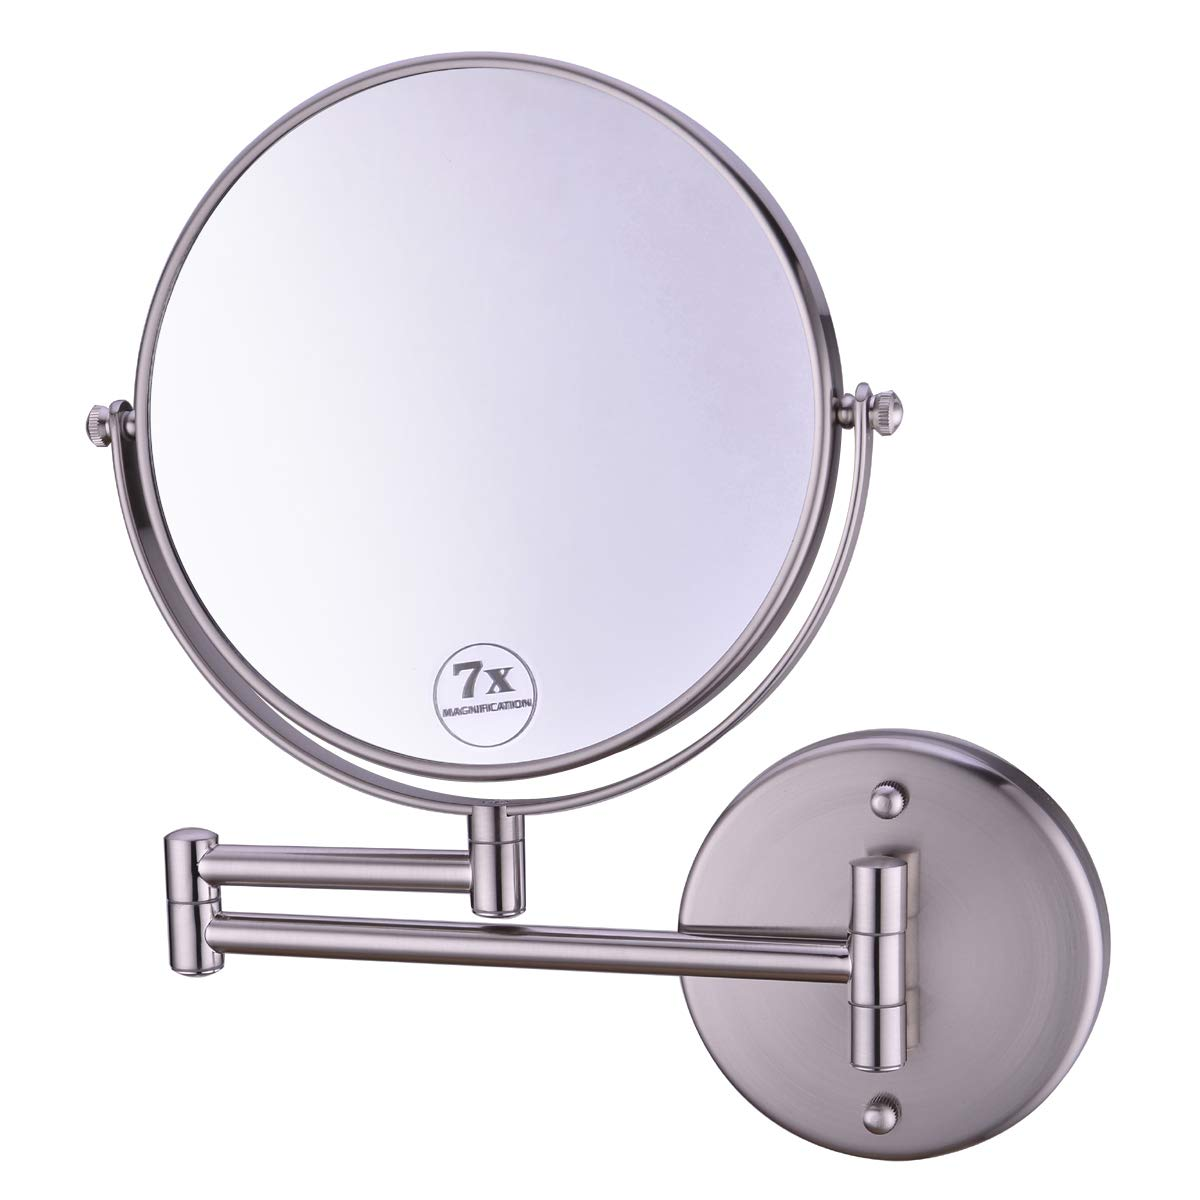 Anpean Wall Mounted Makeup Mirror 7X Magnification with 8 Inch Two Sided Swivel, Brushed Nickel